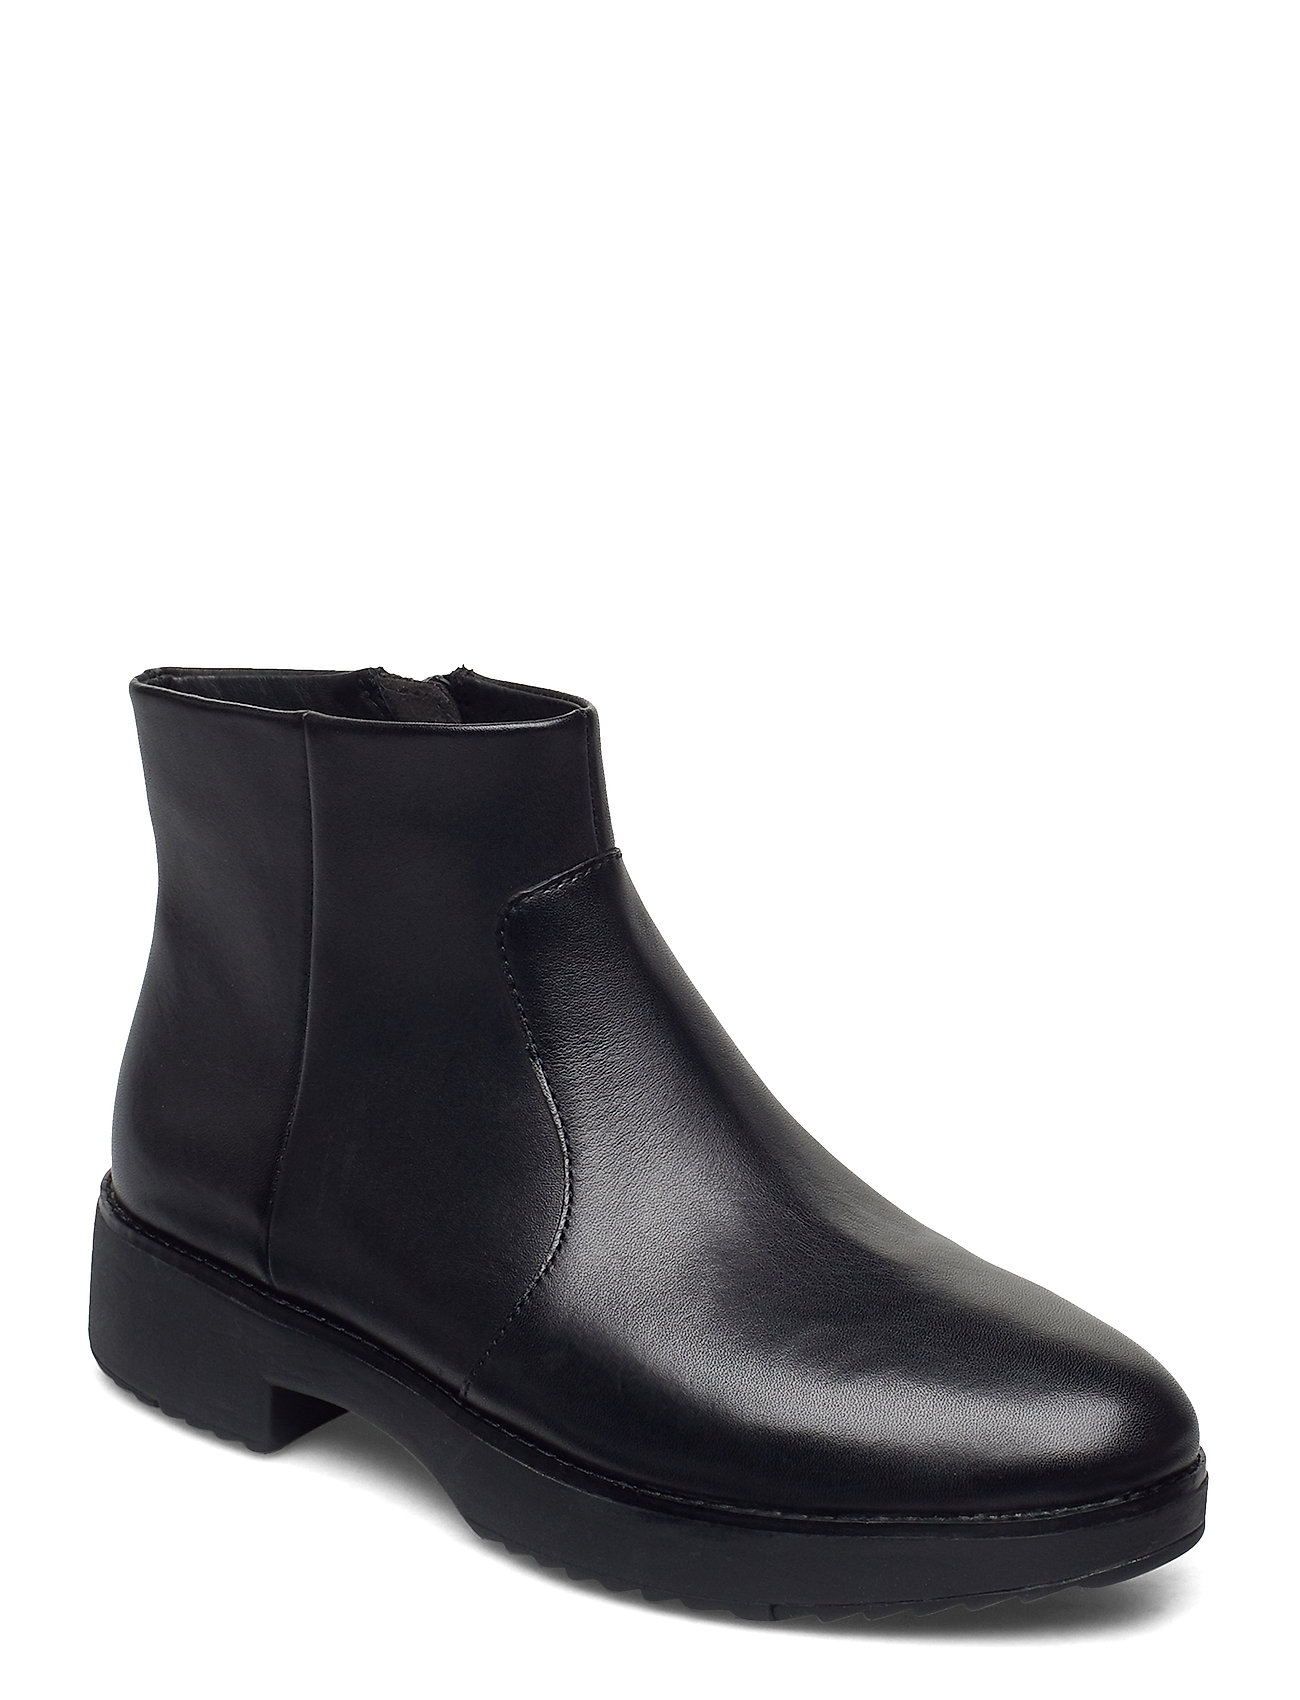 Image of Maria Ankle Boots Shoes Boots Ankle Boots Ankle Boot - Flat Sort FitFlop (3440209275)